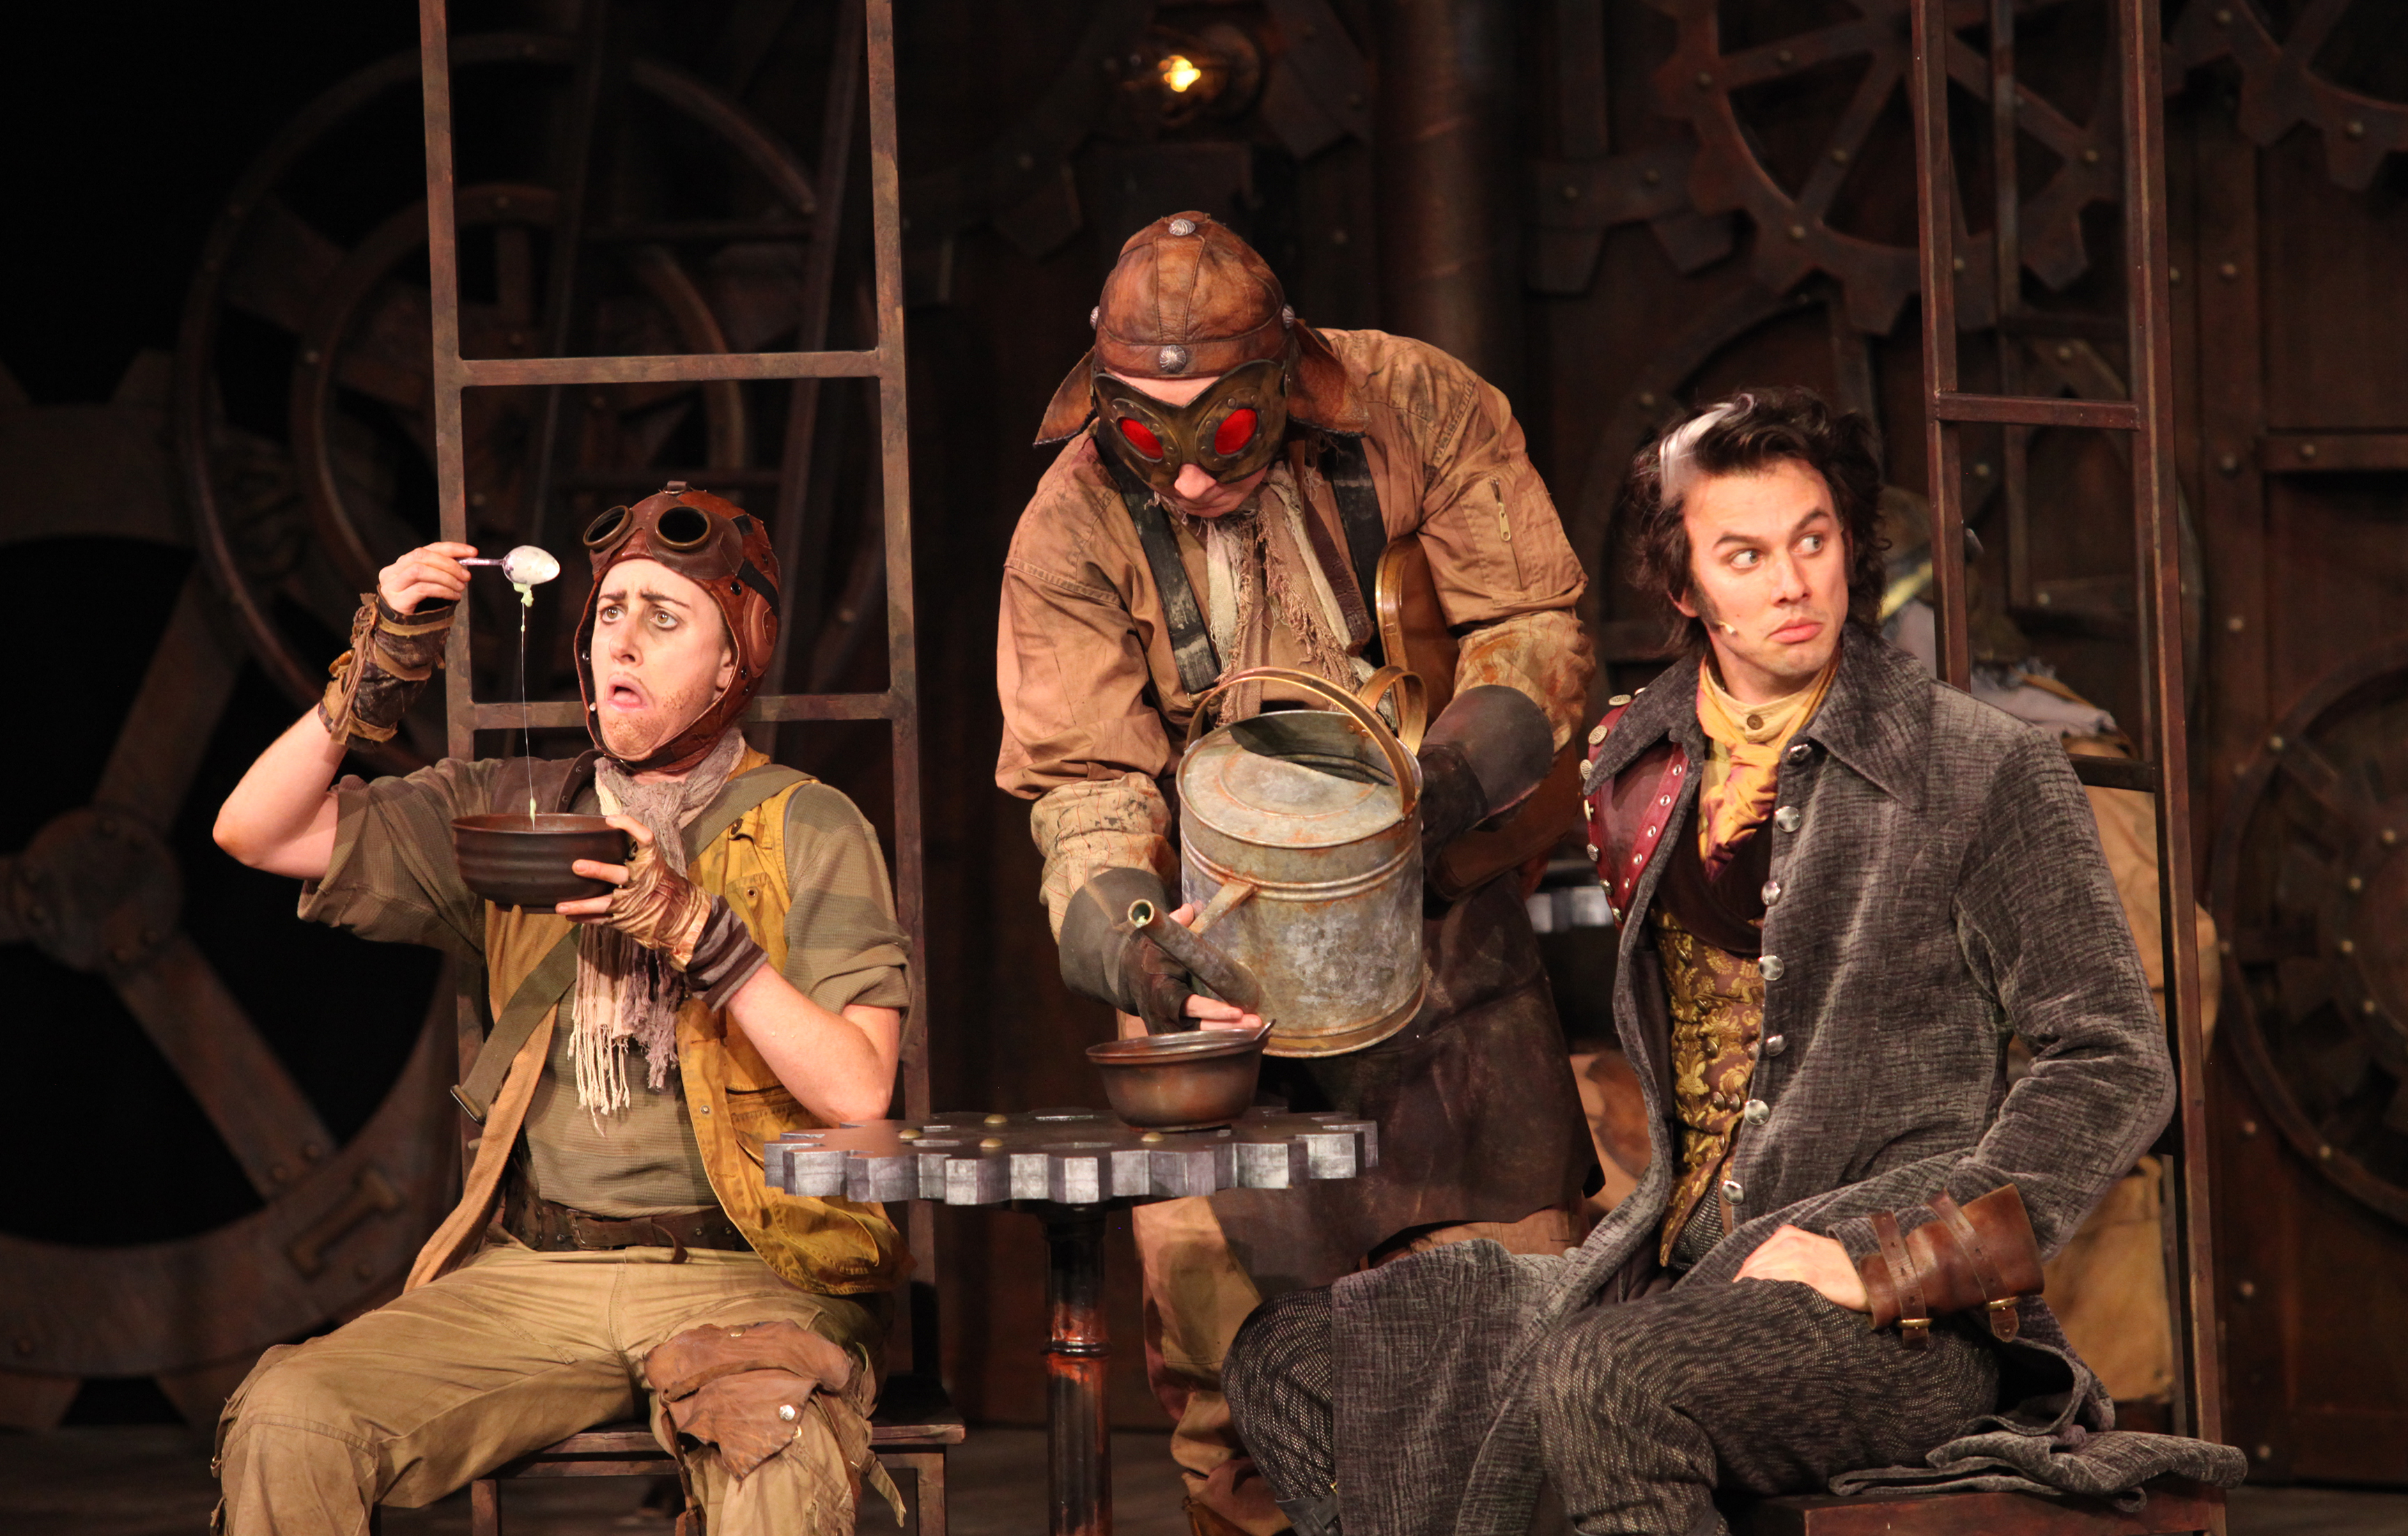 Luisa Jojic, Andrew Cownden, and Ben Elliott in 'The Comedy of Errors' at Bard on the Beach Photo by David Blue